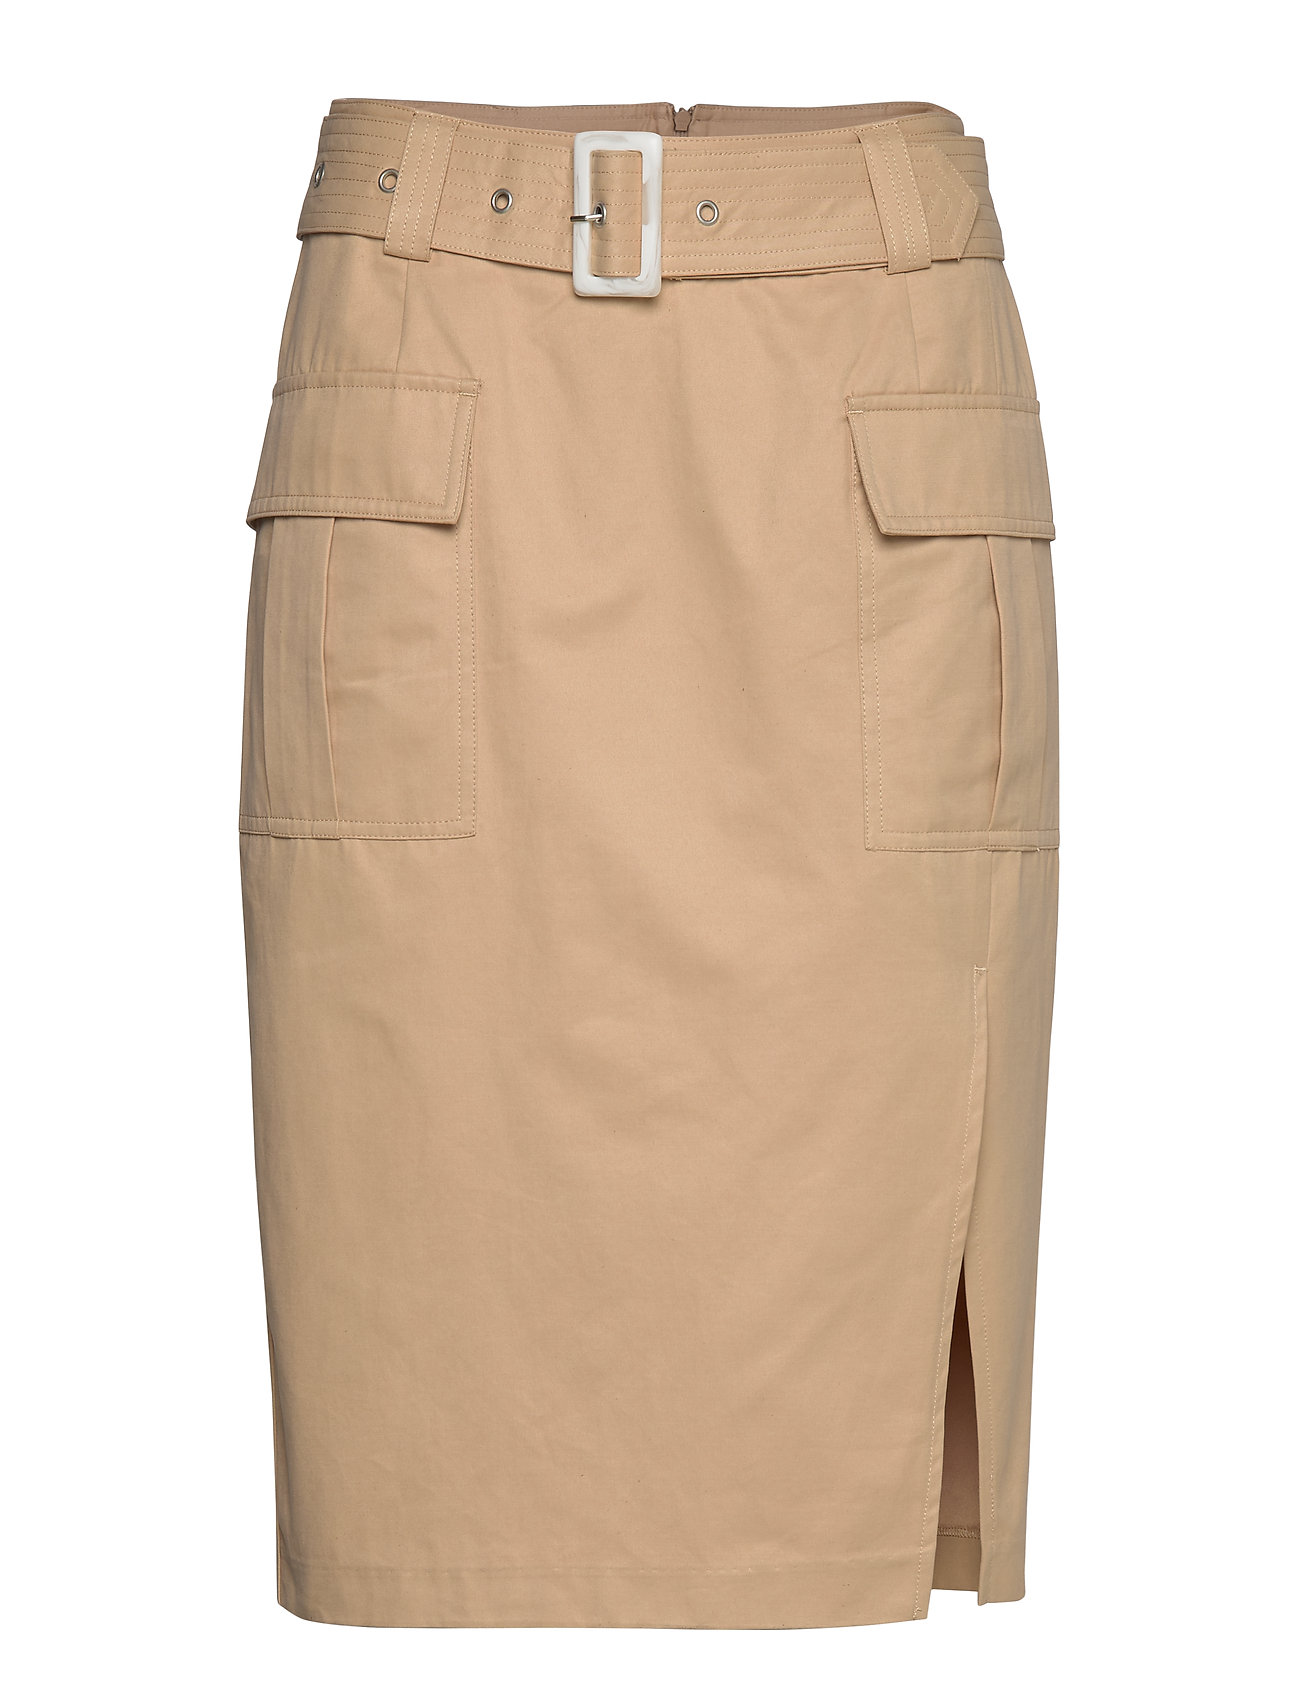 Notes du Nord Mia Skirt - NUDE